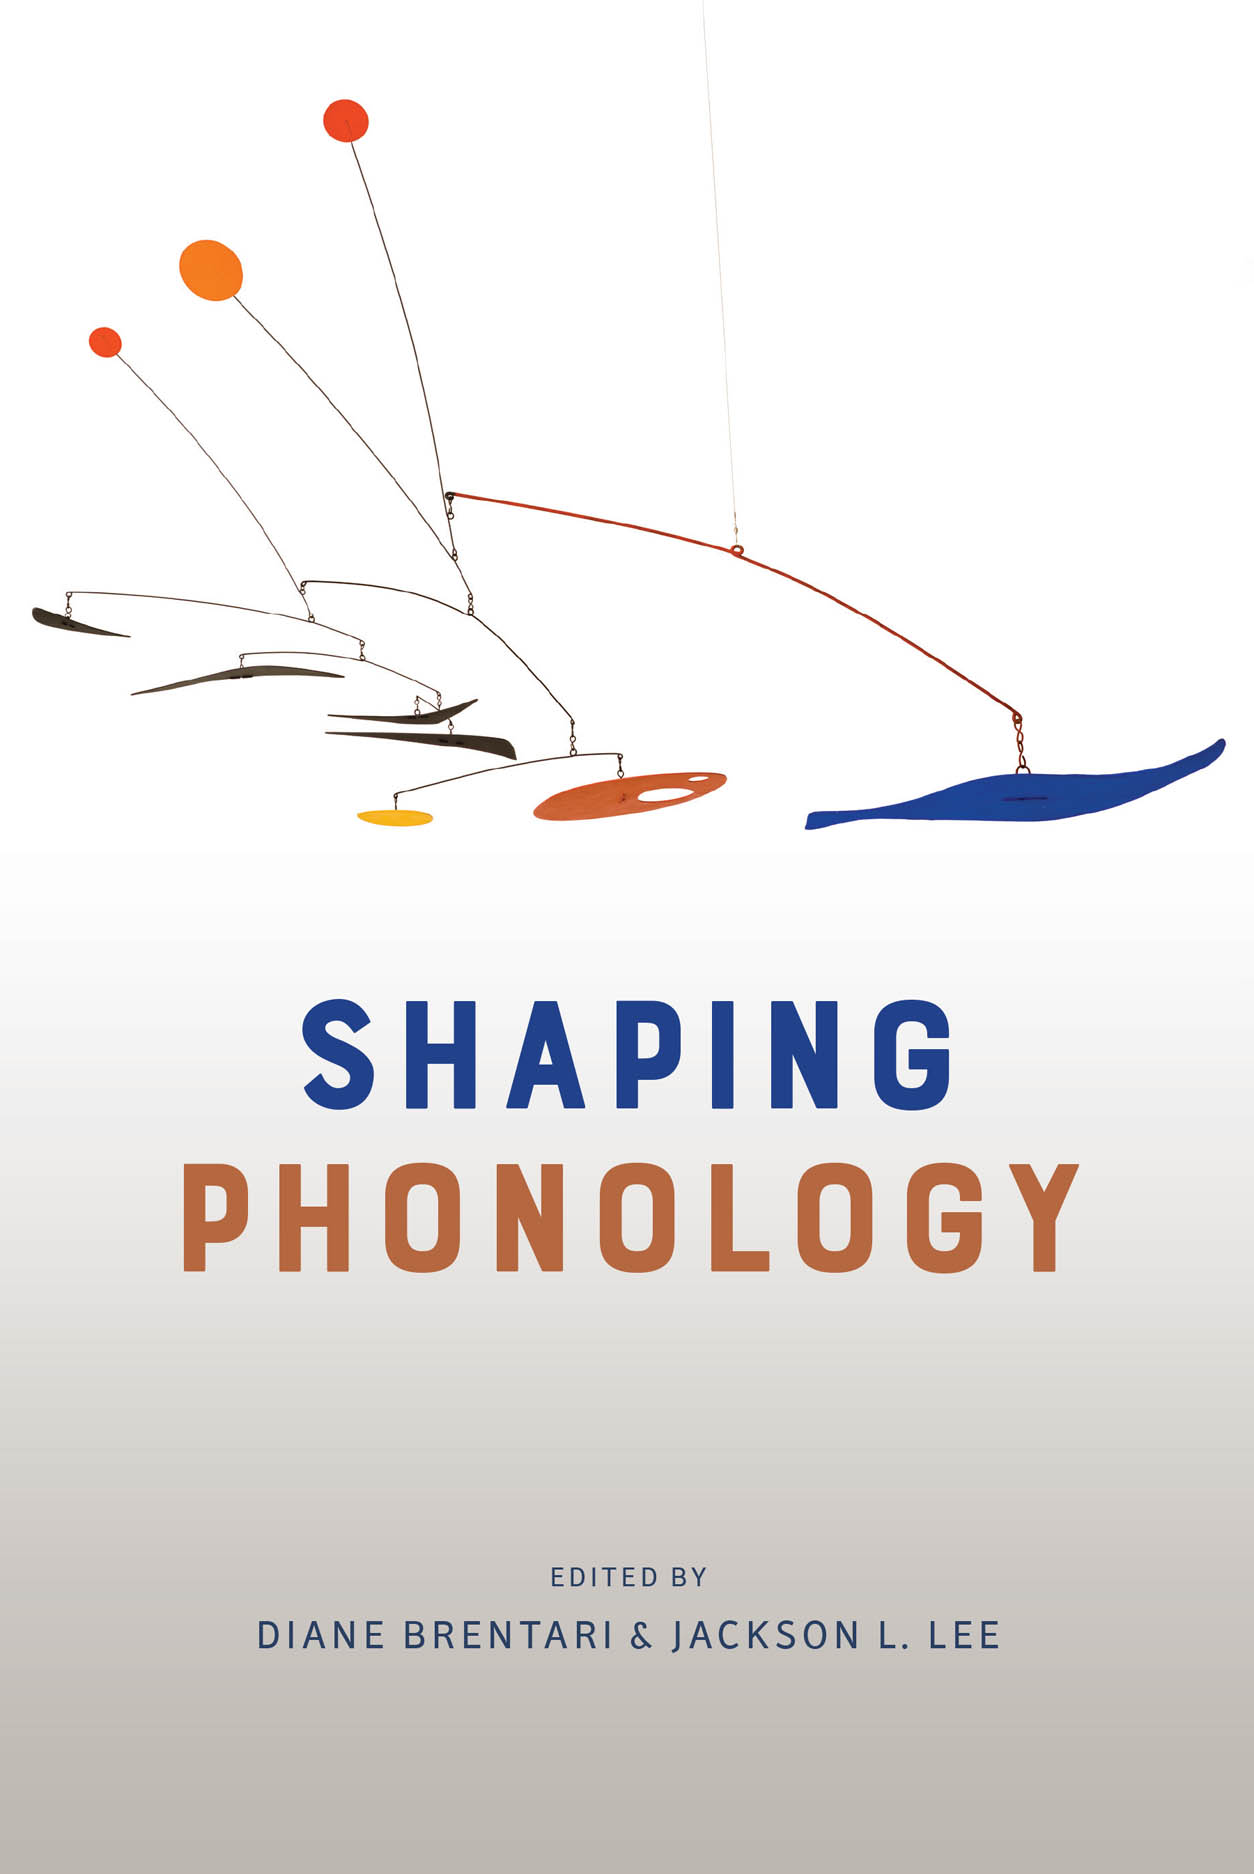 Shaping Phonology